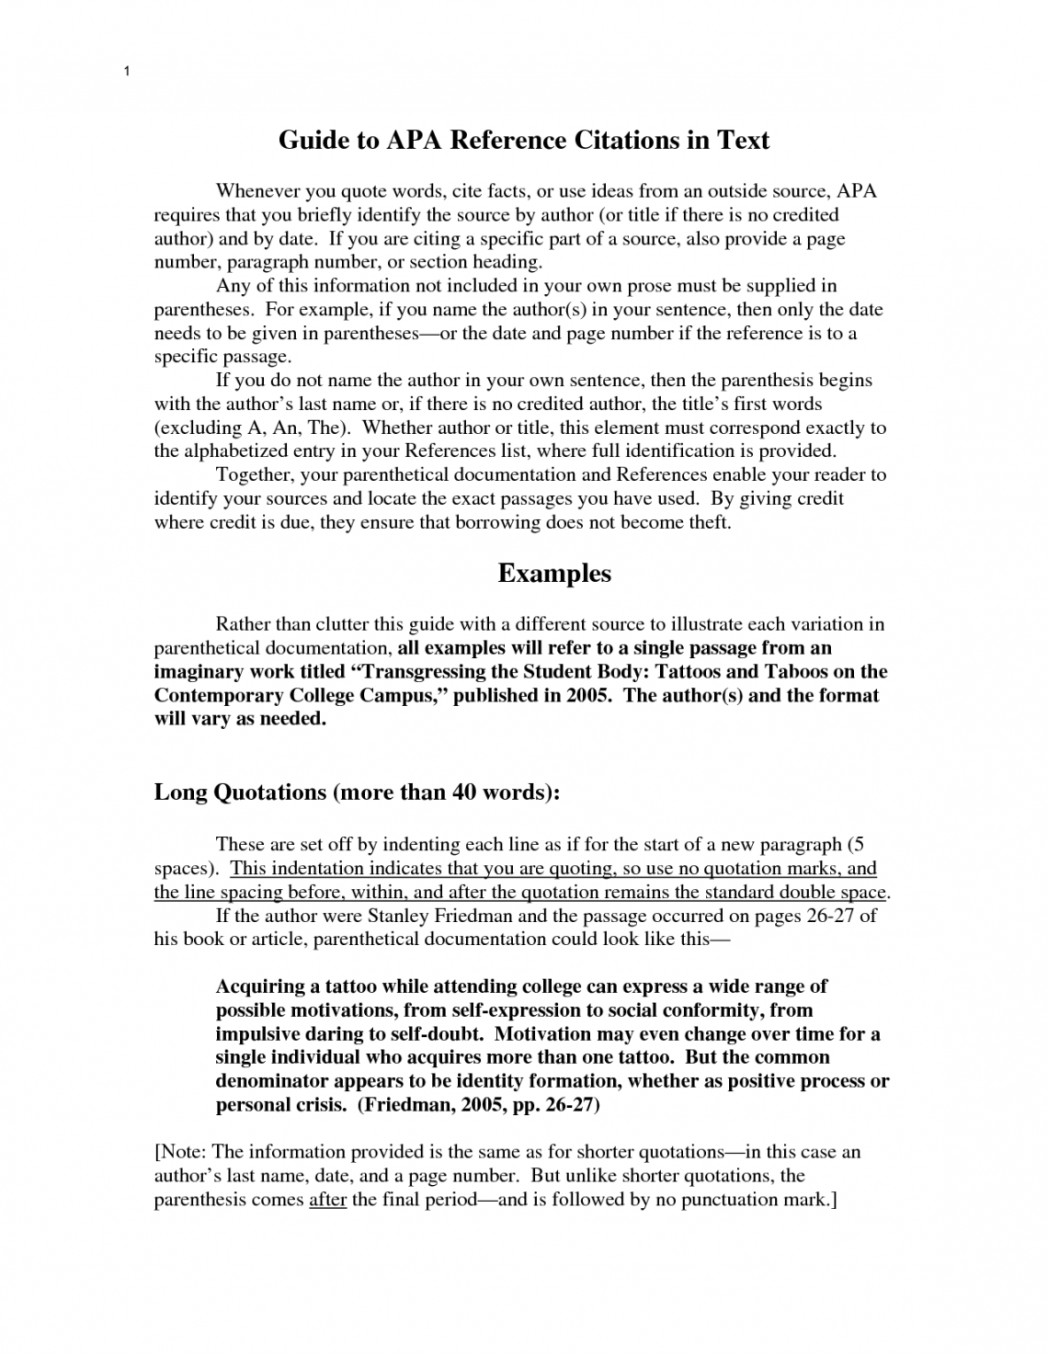 016 When Quoting In An Essay Where Is The Punctuation Using Quotes Format Quotation Starting With Quote Beginning Explanatory Sample 1048x1356 Exceptional Full